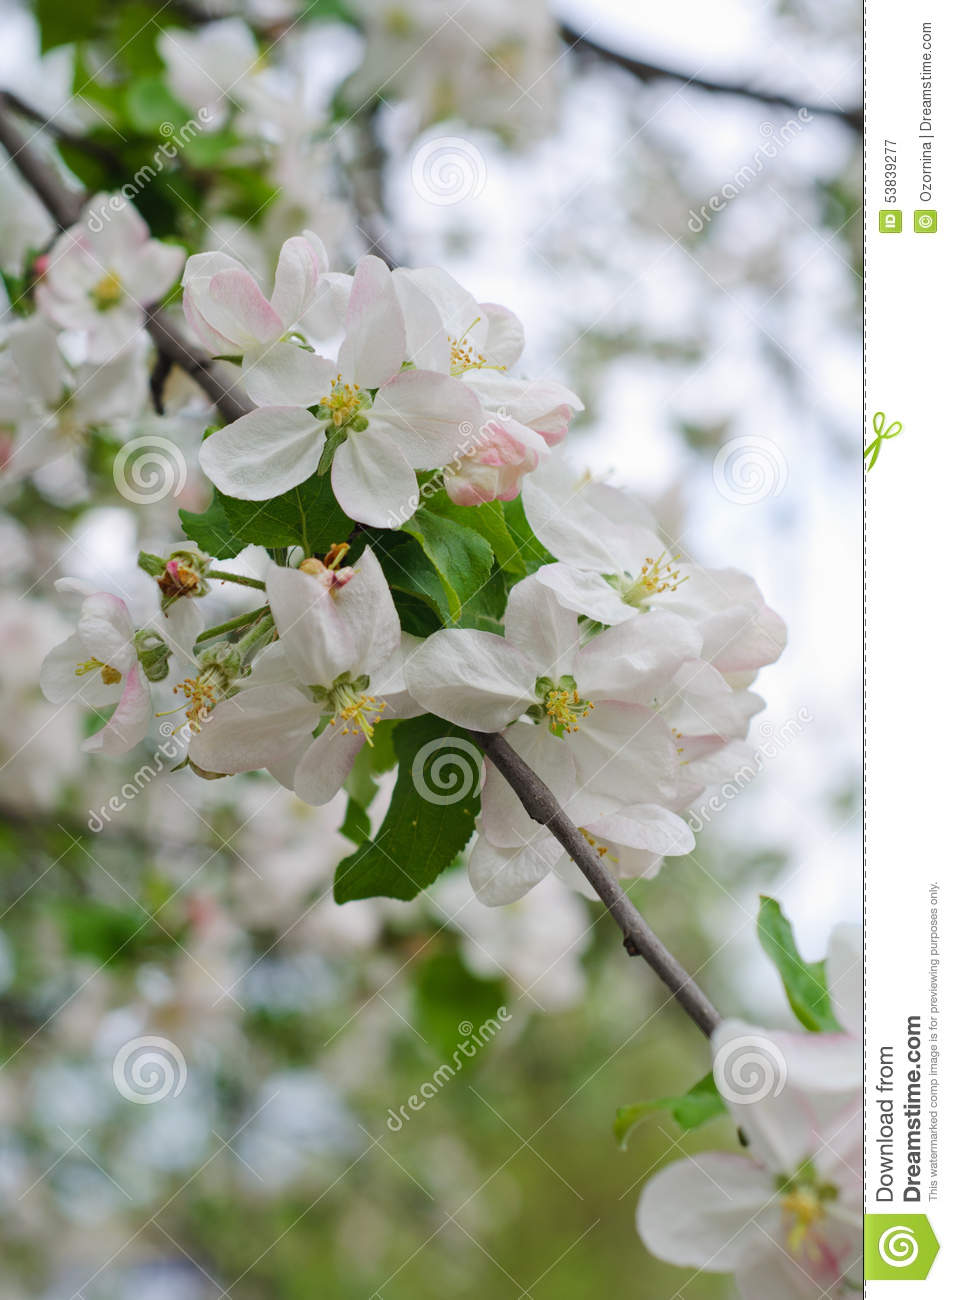 Crabapple Tree Blossoms Stock Image Image Of Outdoors 53839277